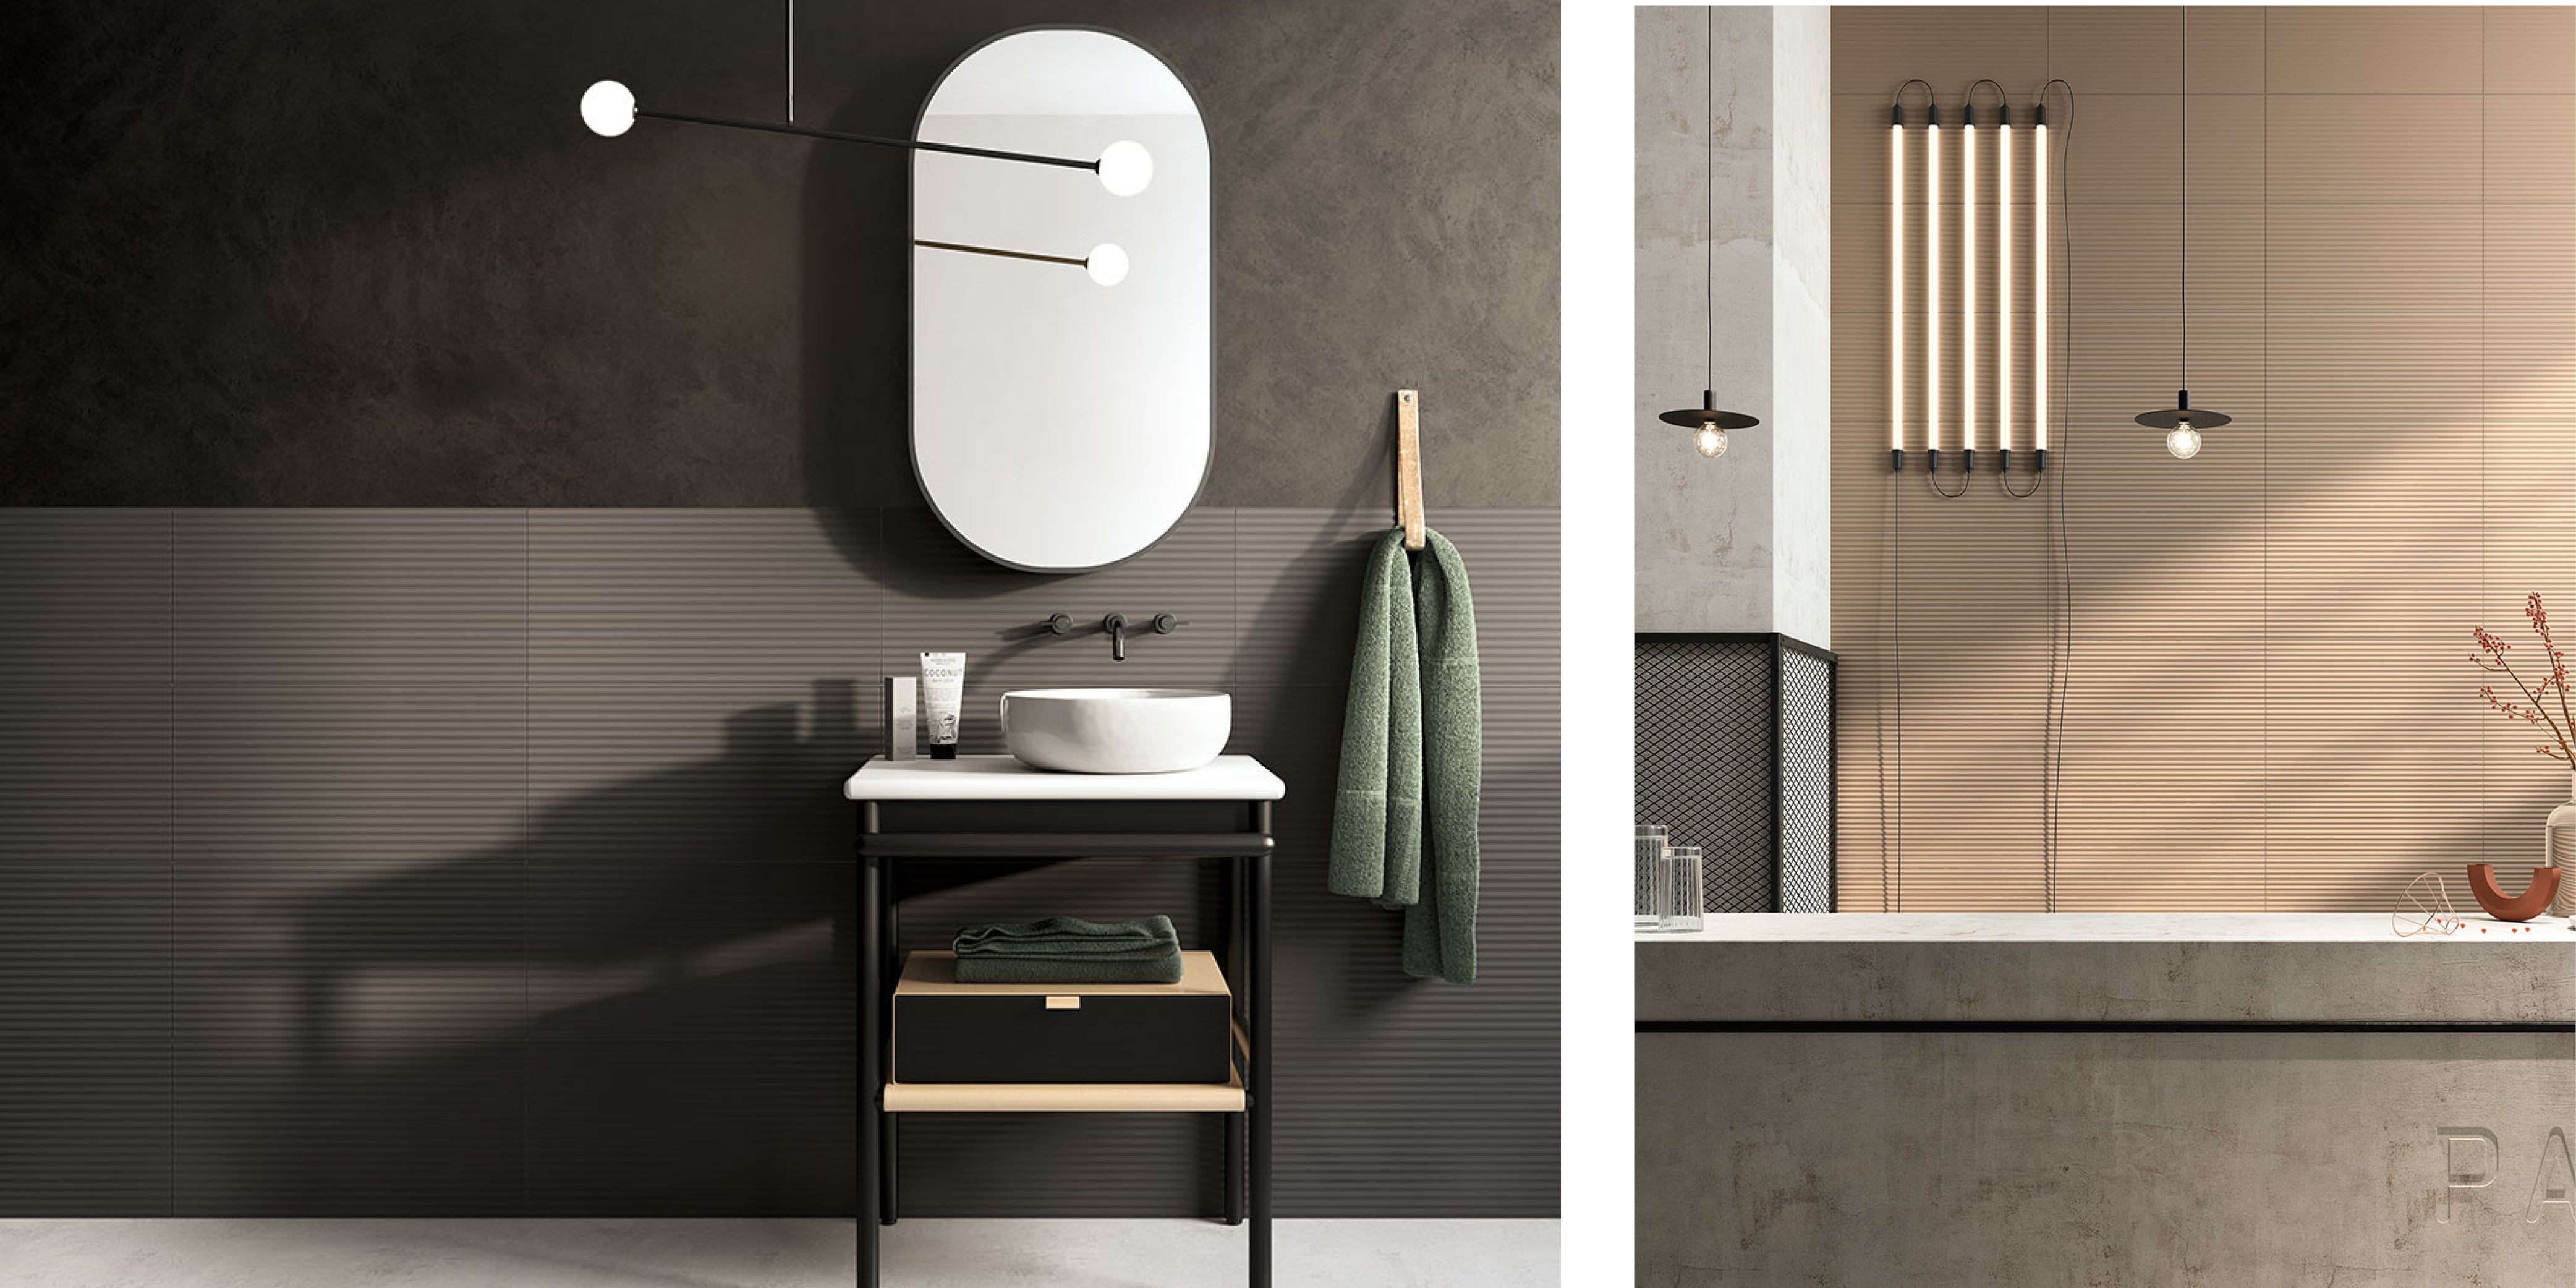 Passepartout by Fioranese | Elite Bathware & Tiles | Brisbane, Australia